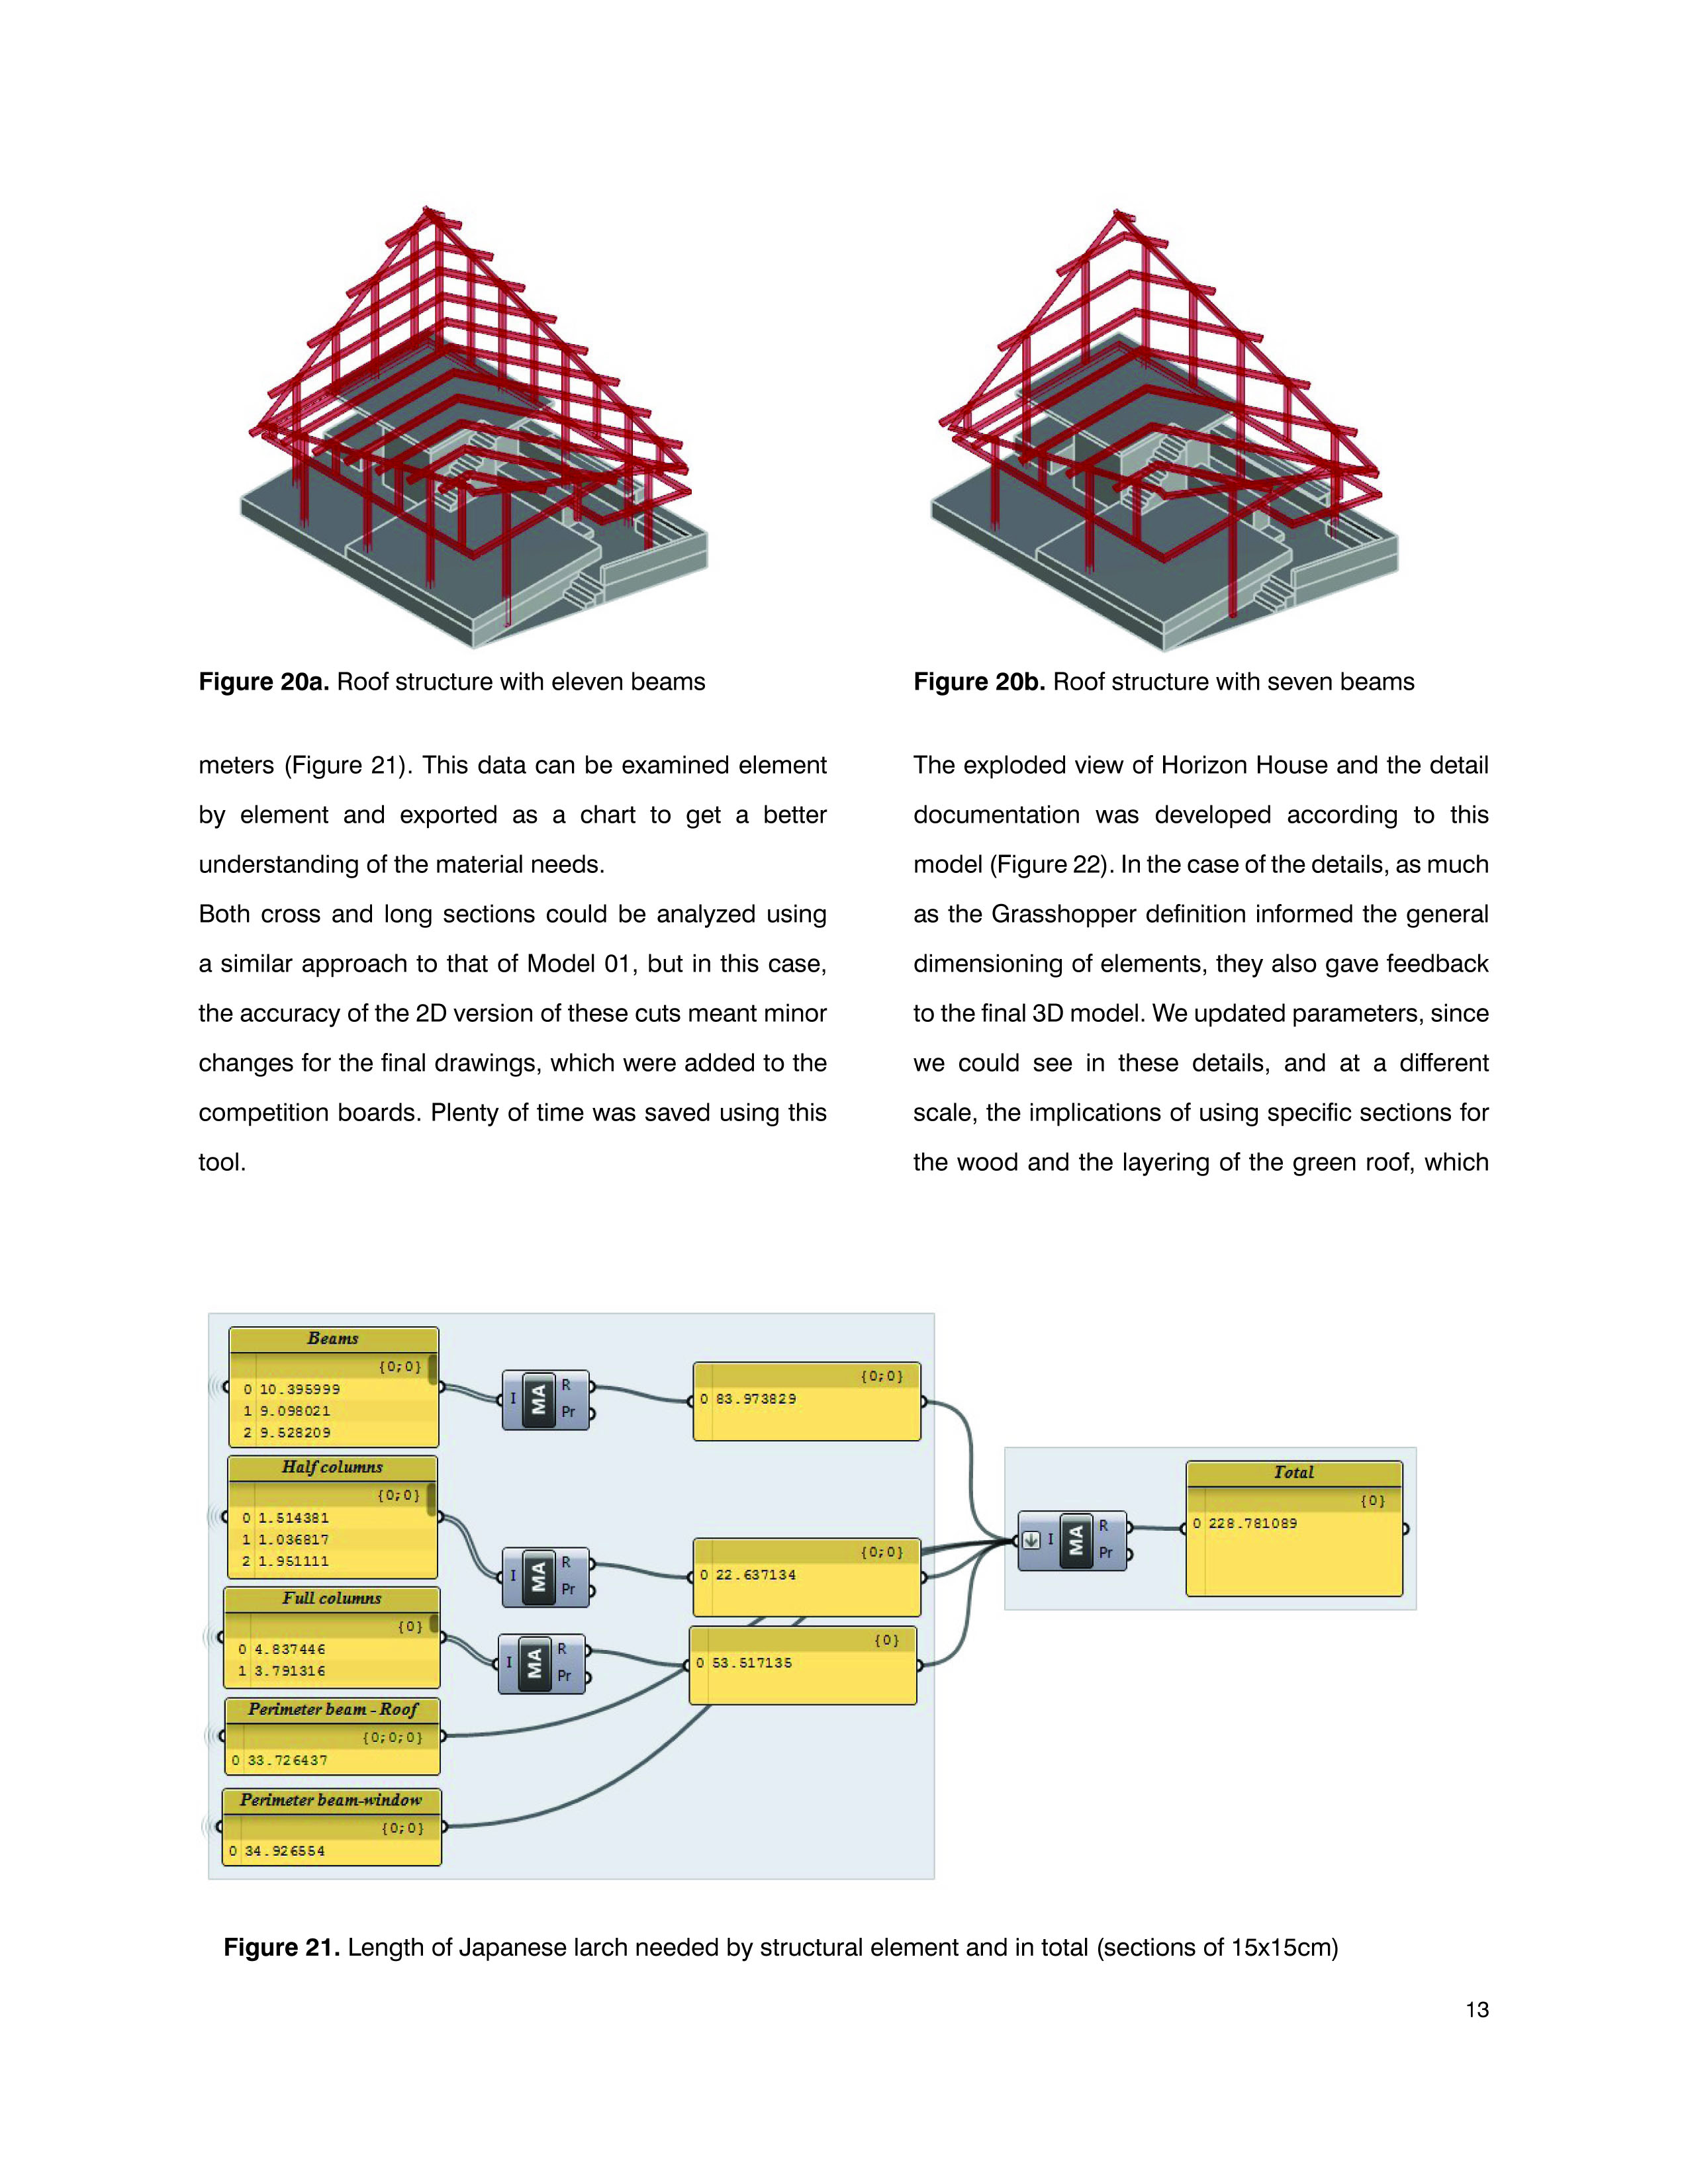 Applications of parametric design tools in Horizon House_Ana Garcia Puyol-Page13